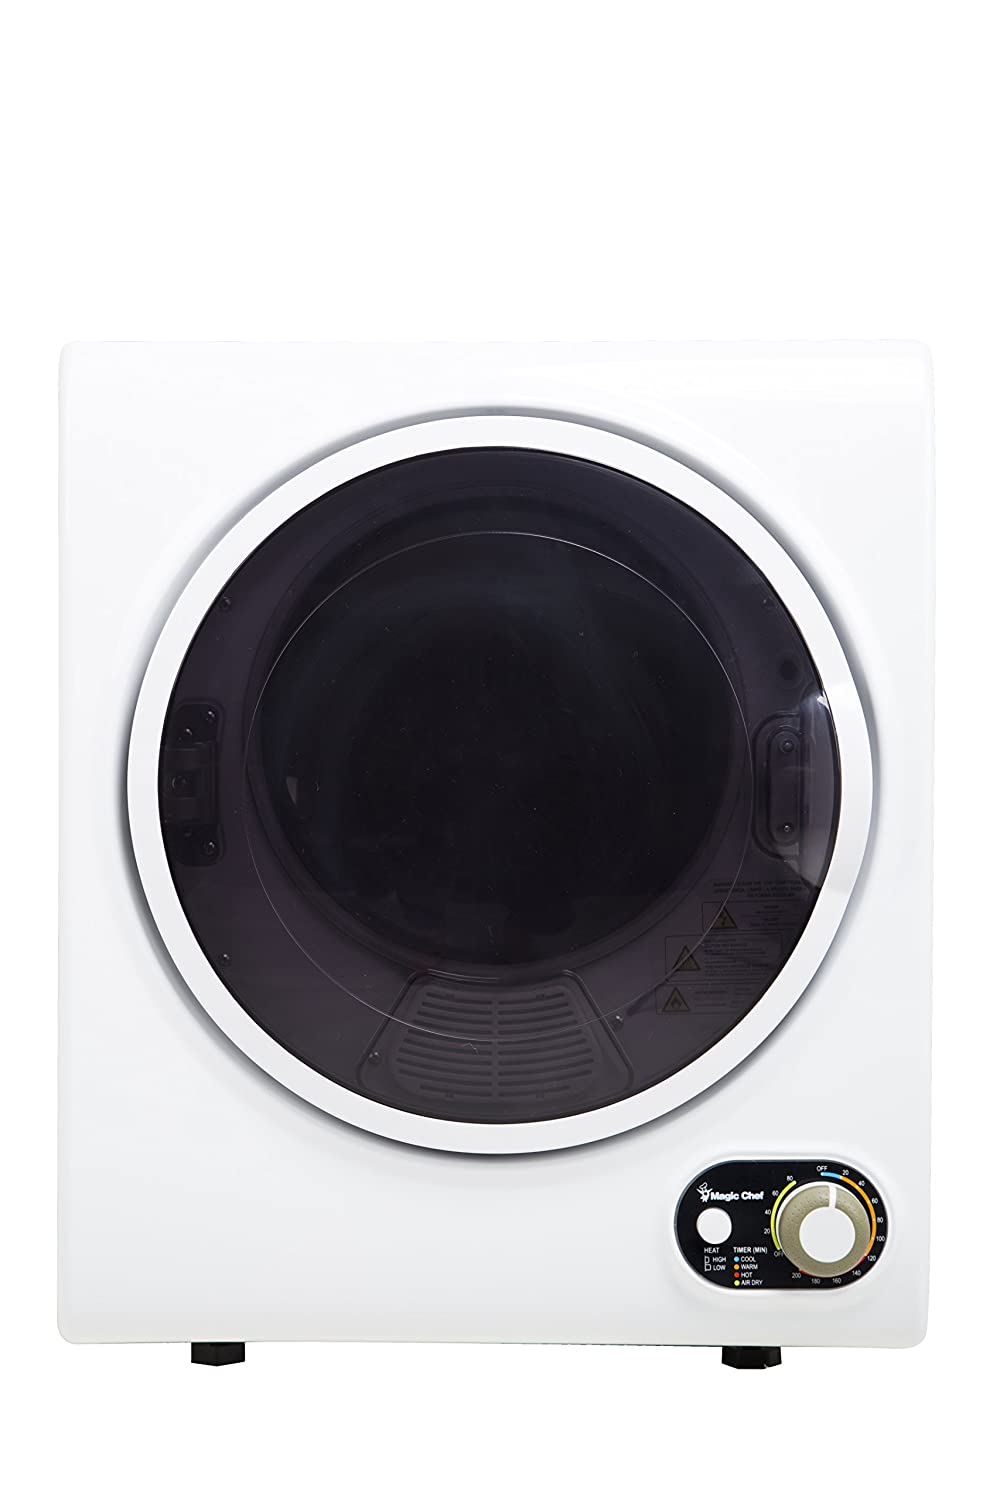 Magic Chef MCSDRY15W 1.5 cu. ft. Laundry Dryer, White